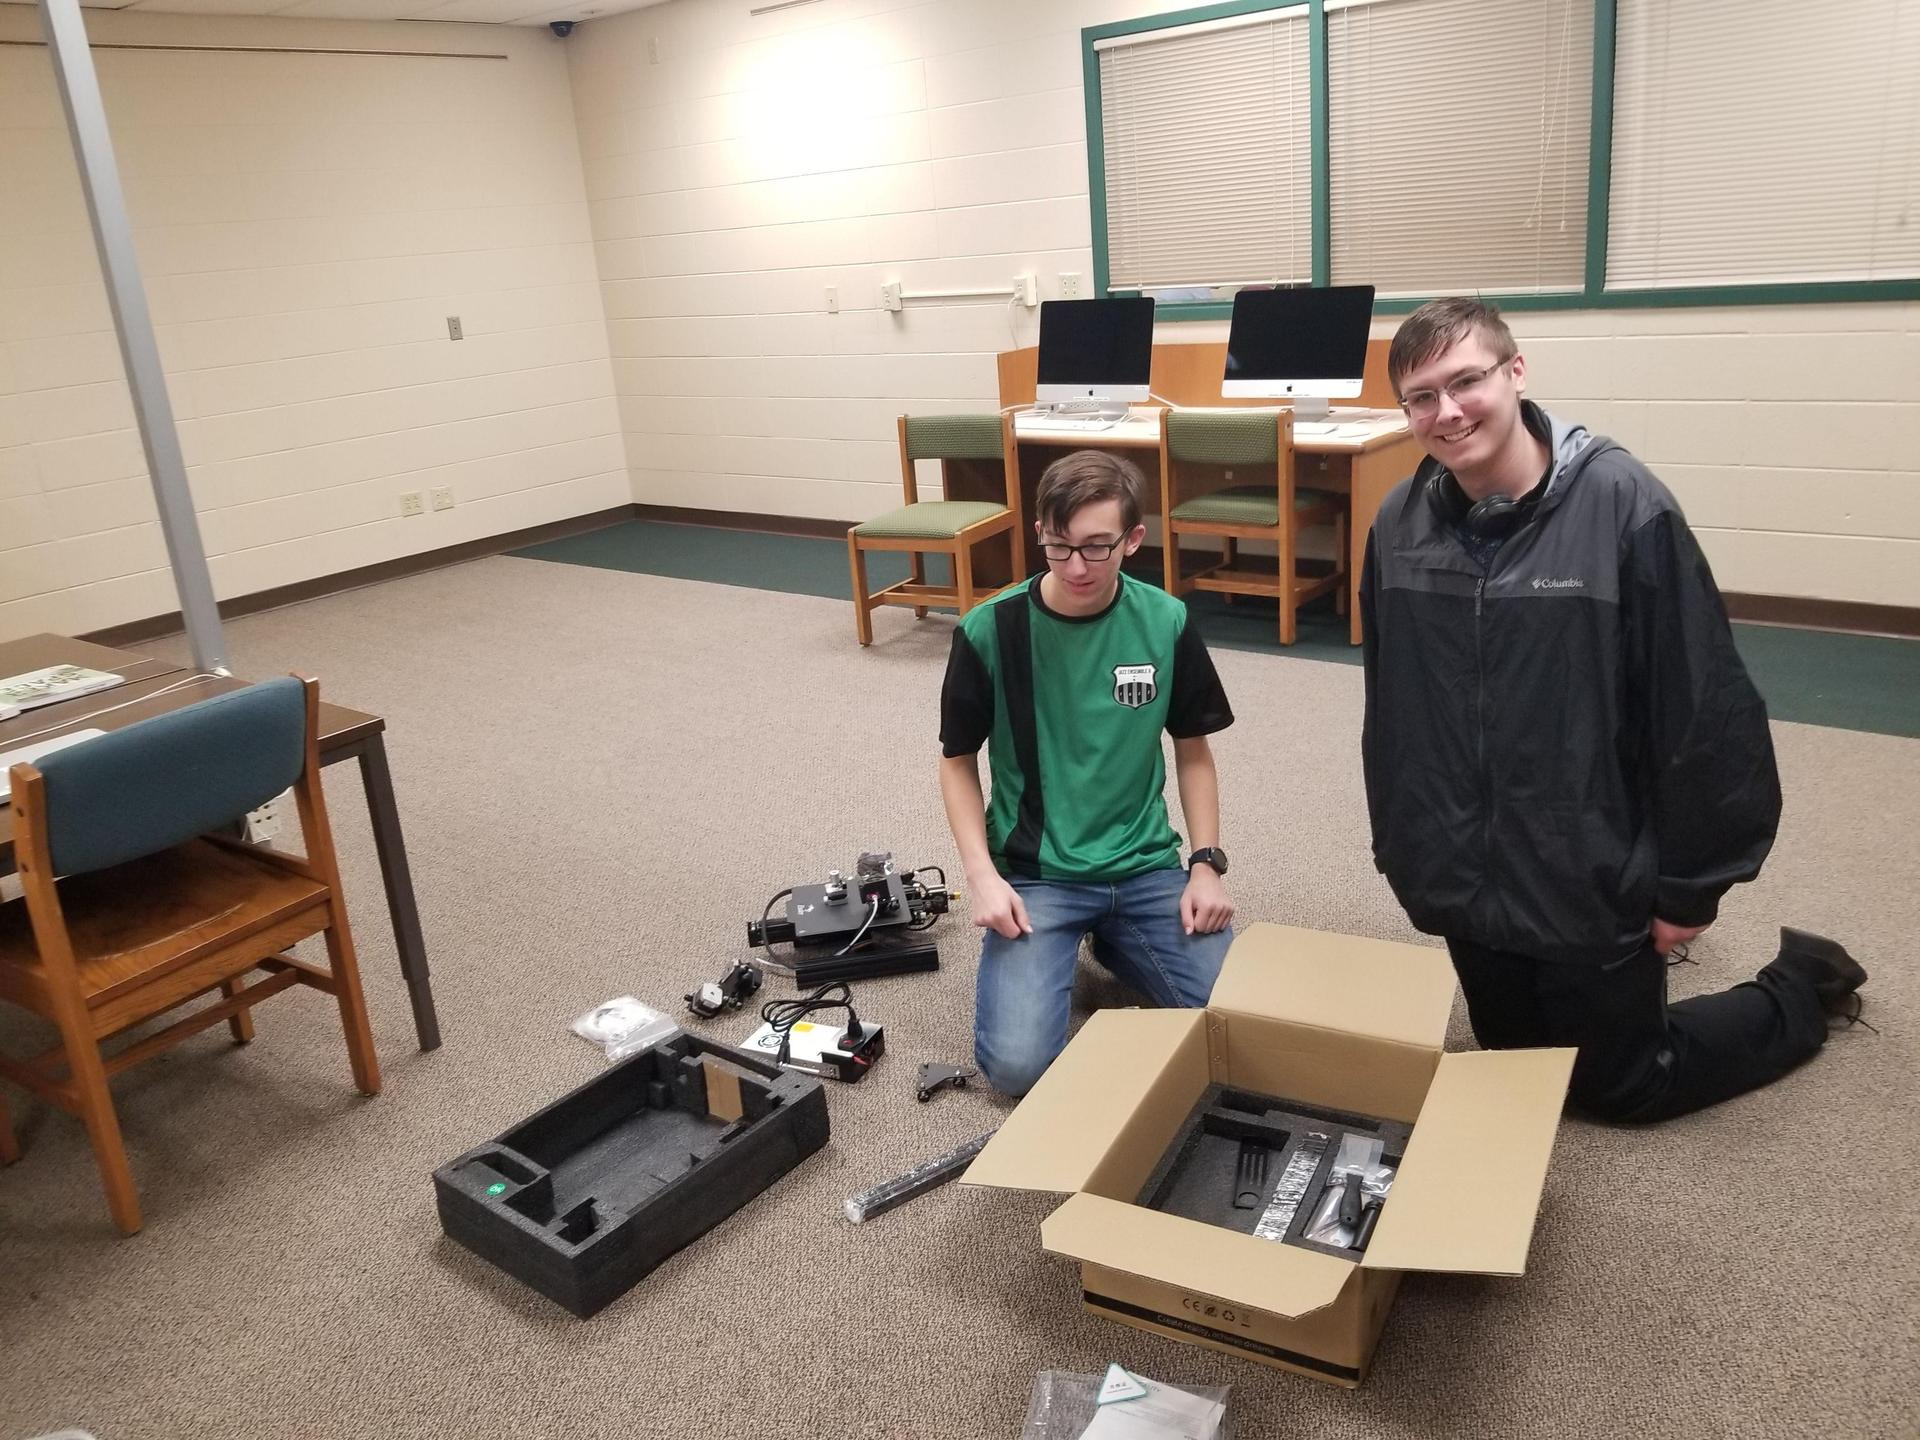 Two boys kneeling on the floor by a box with electronic parts around them